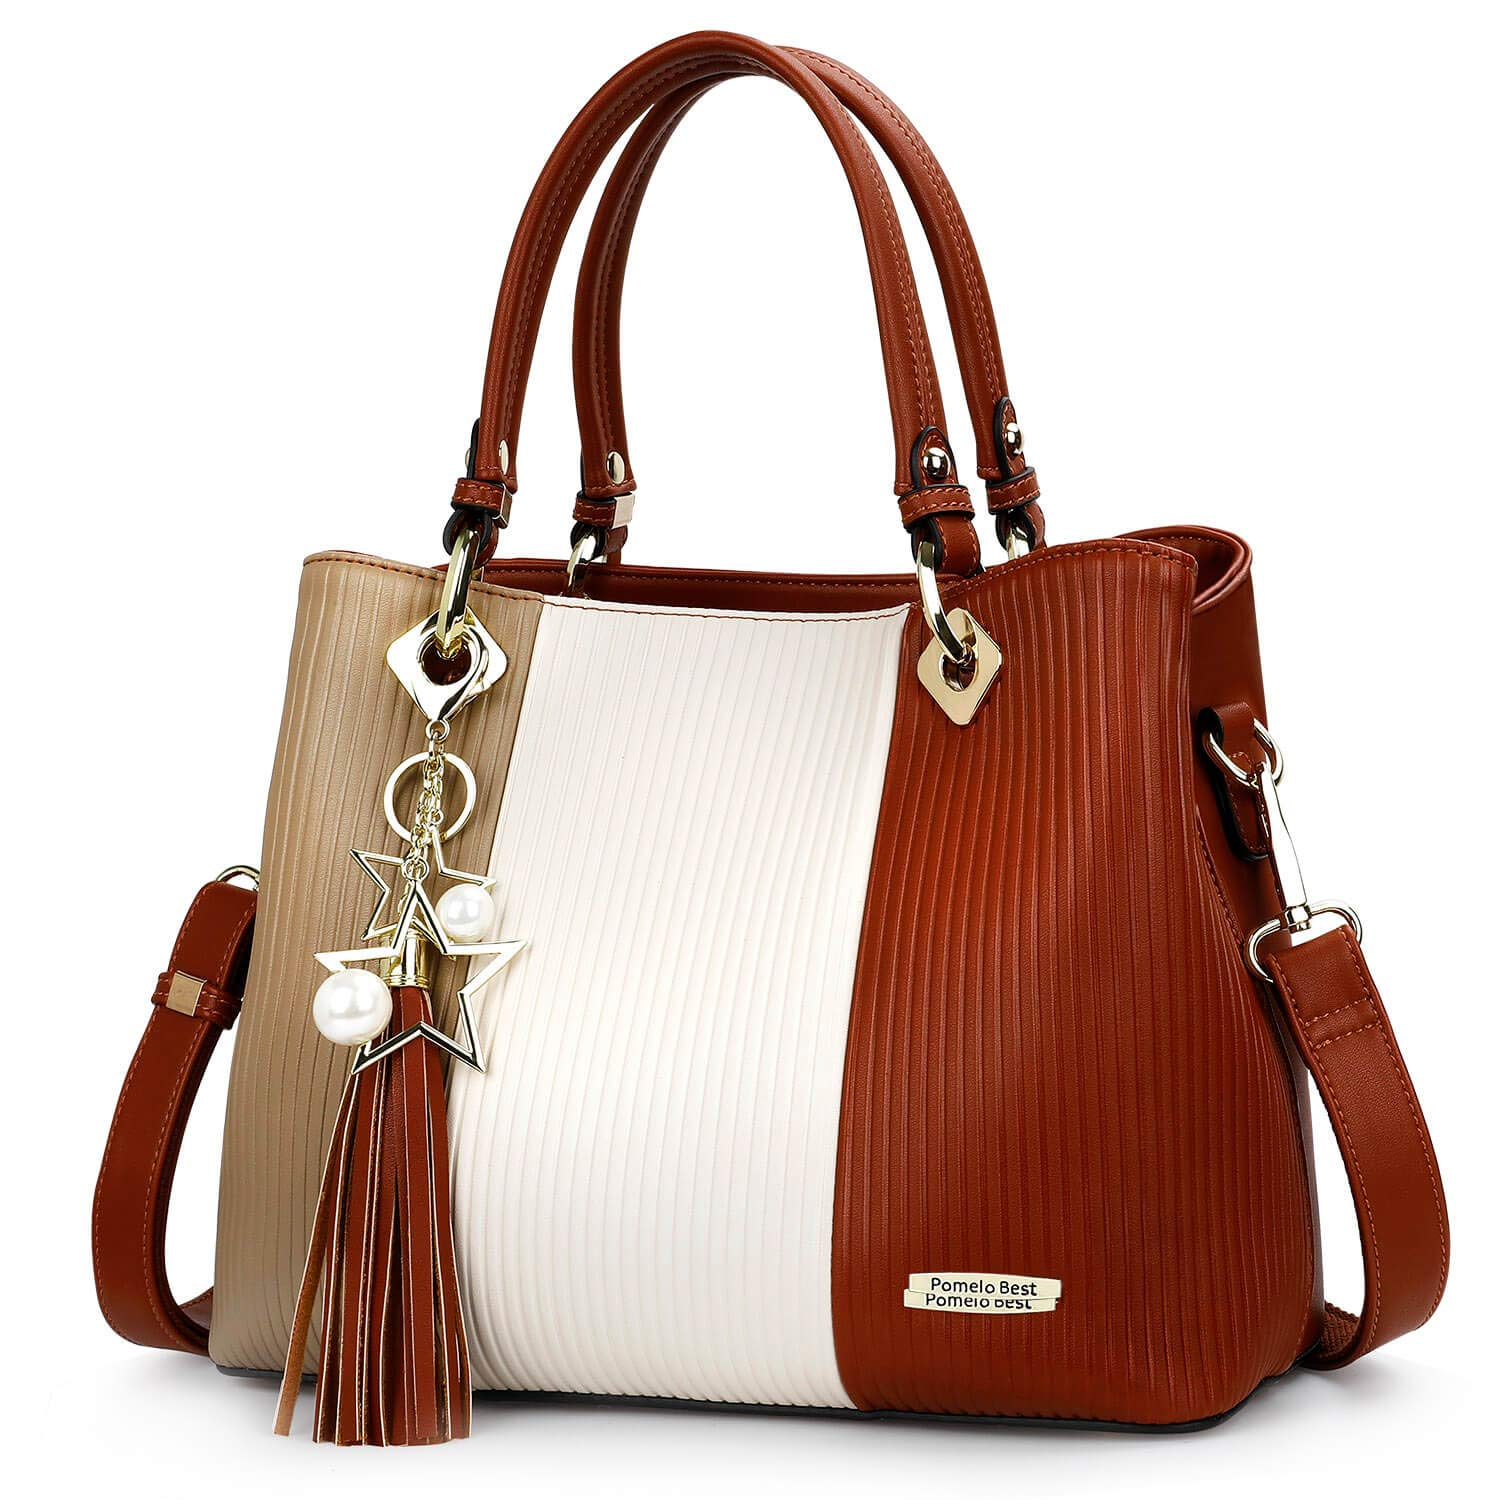 Handbags for Women with Multiple Internal Pockets in Pretty Color Combination (Brown/White/Coffee)